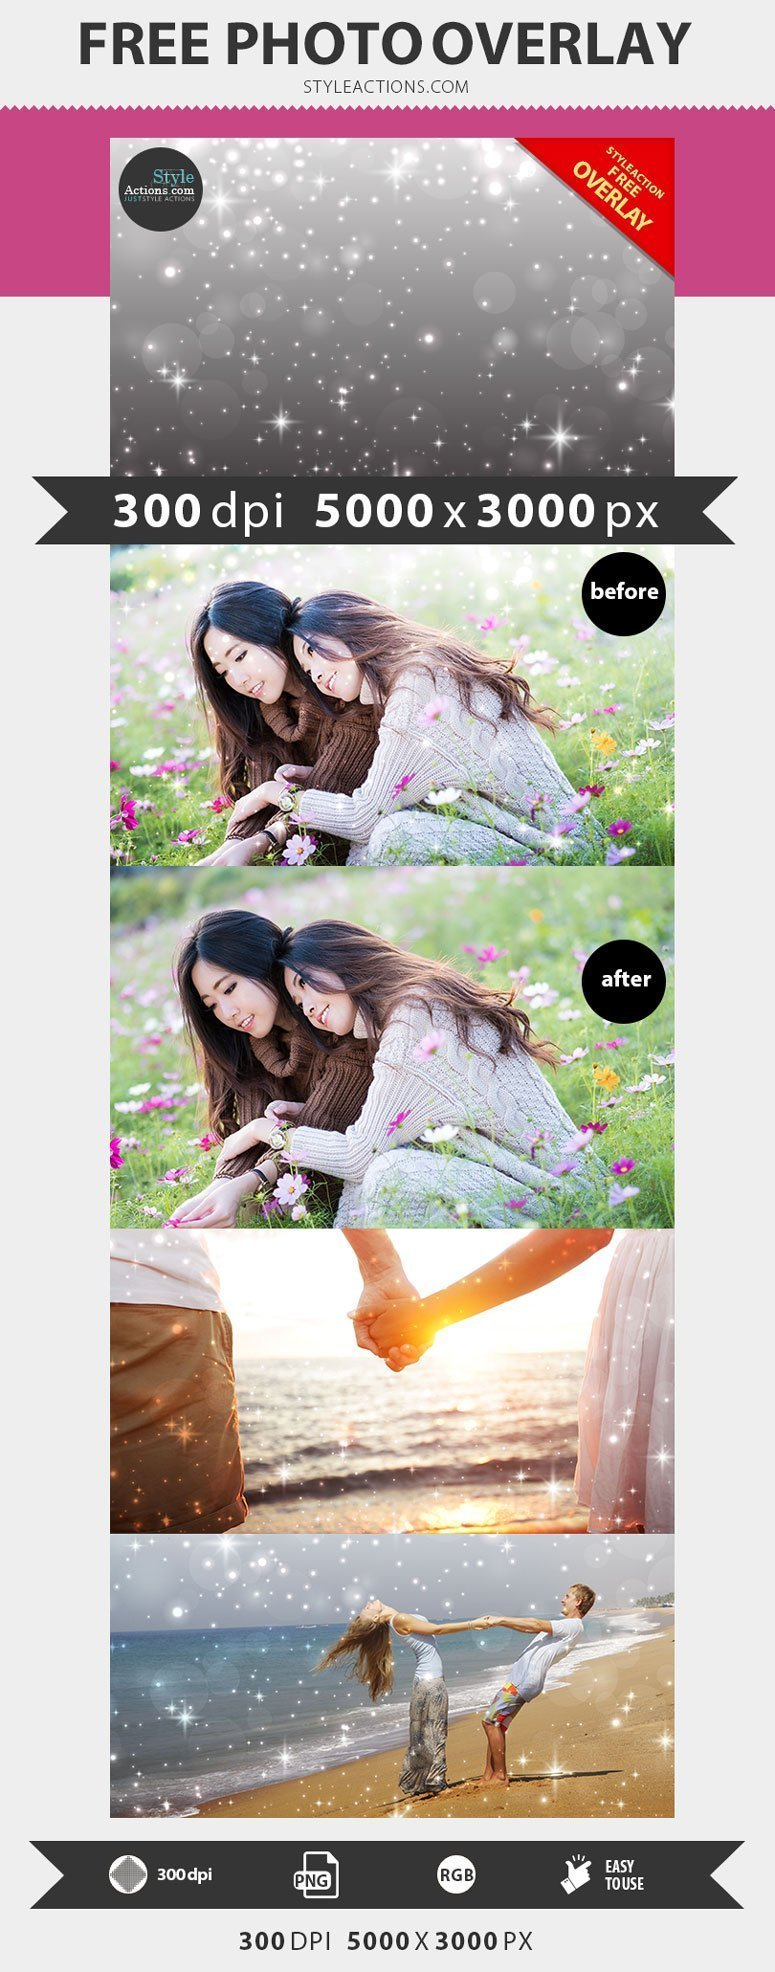 preview_photooverlay